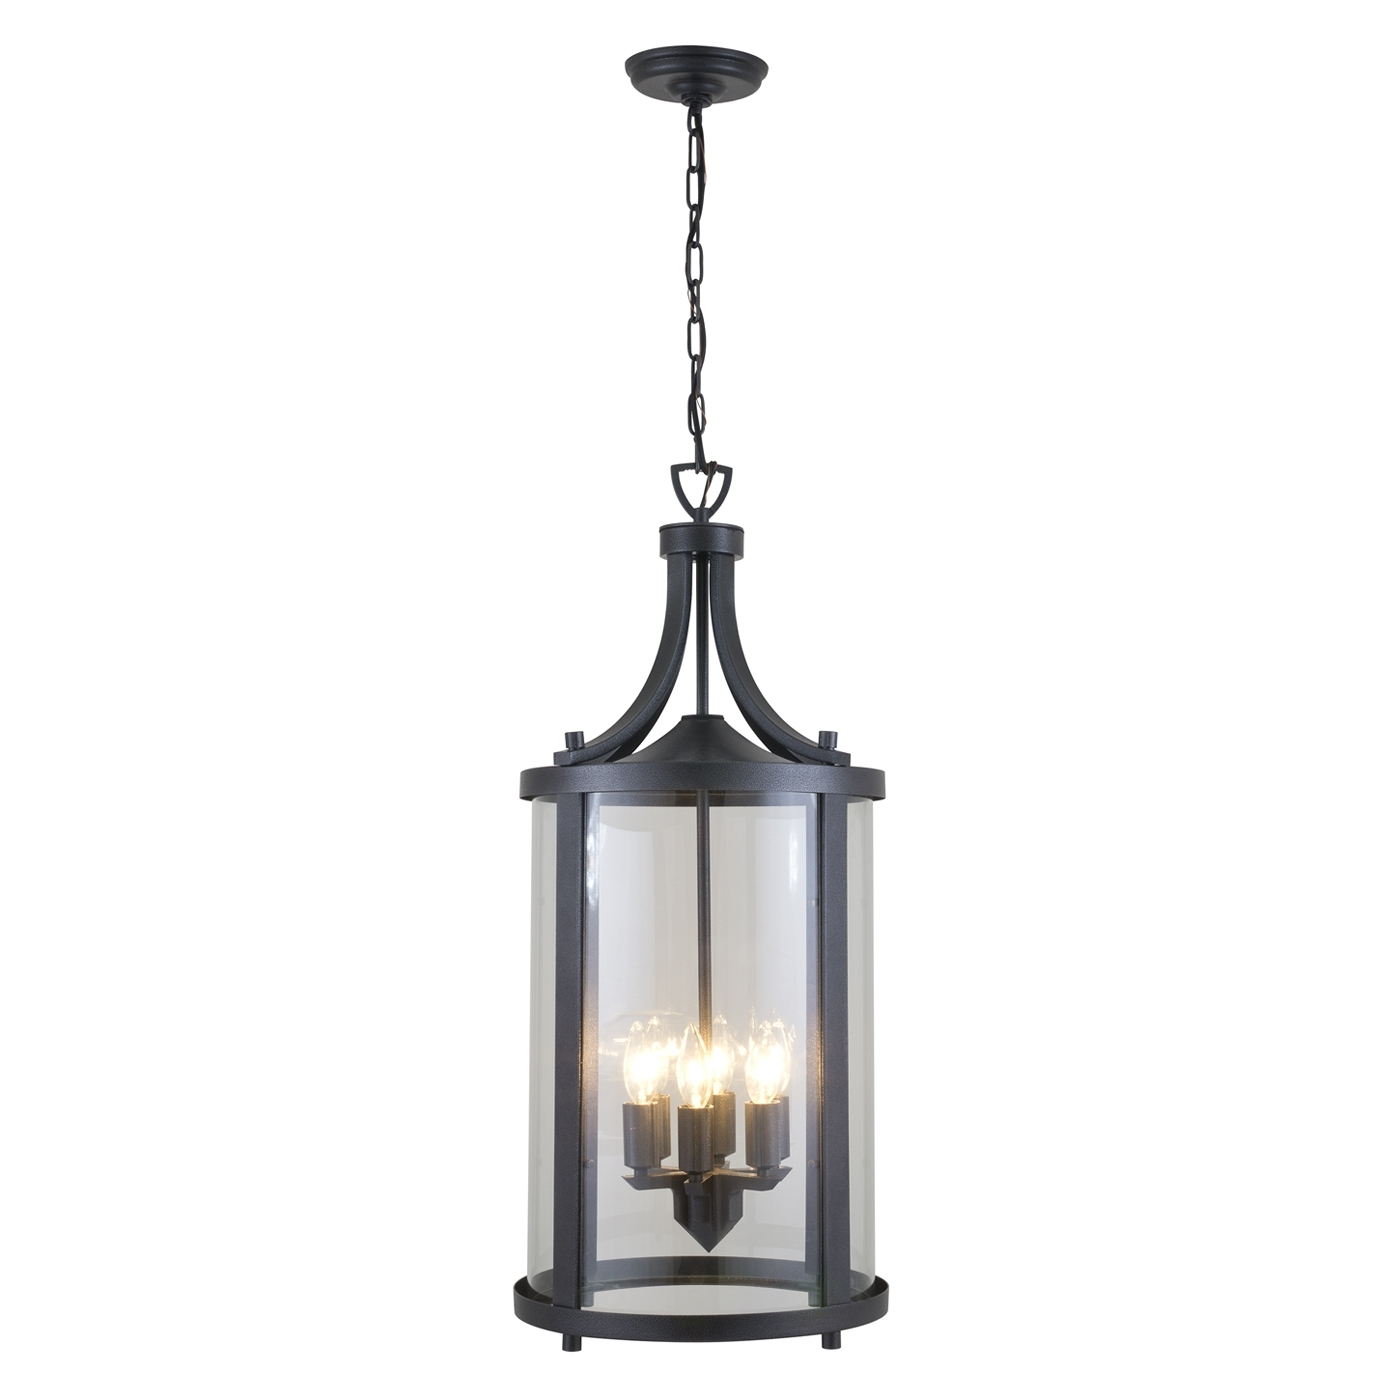 Inspiration about Dvi Niagara Outdoor Large Pendant | Lowe's Canada For Lowes Outdoor Hanging Lighting Fixtures (#5 of 15)